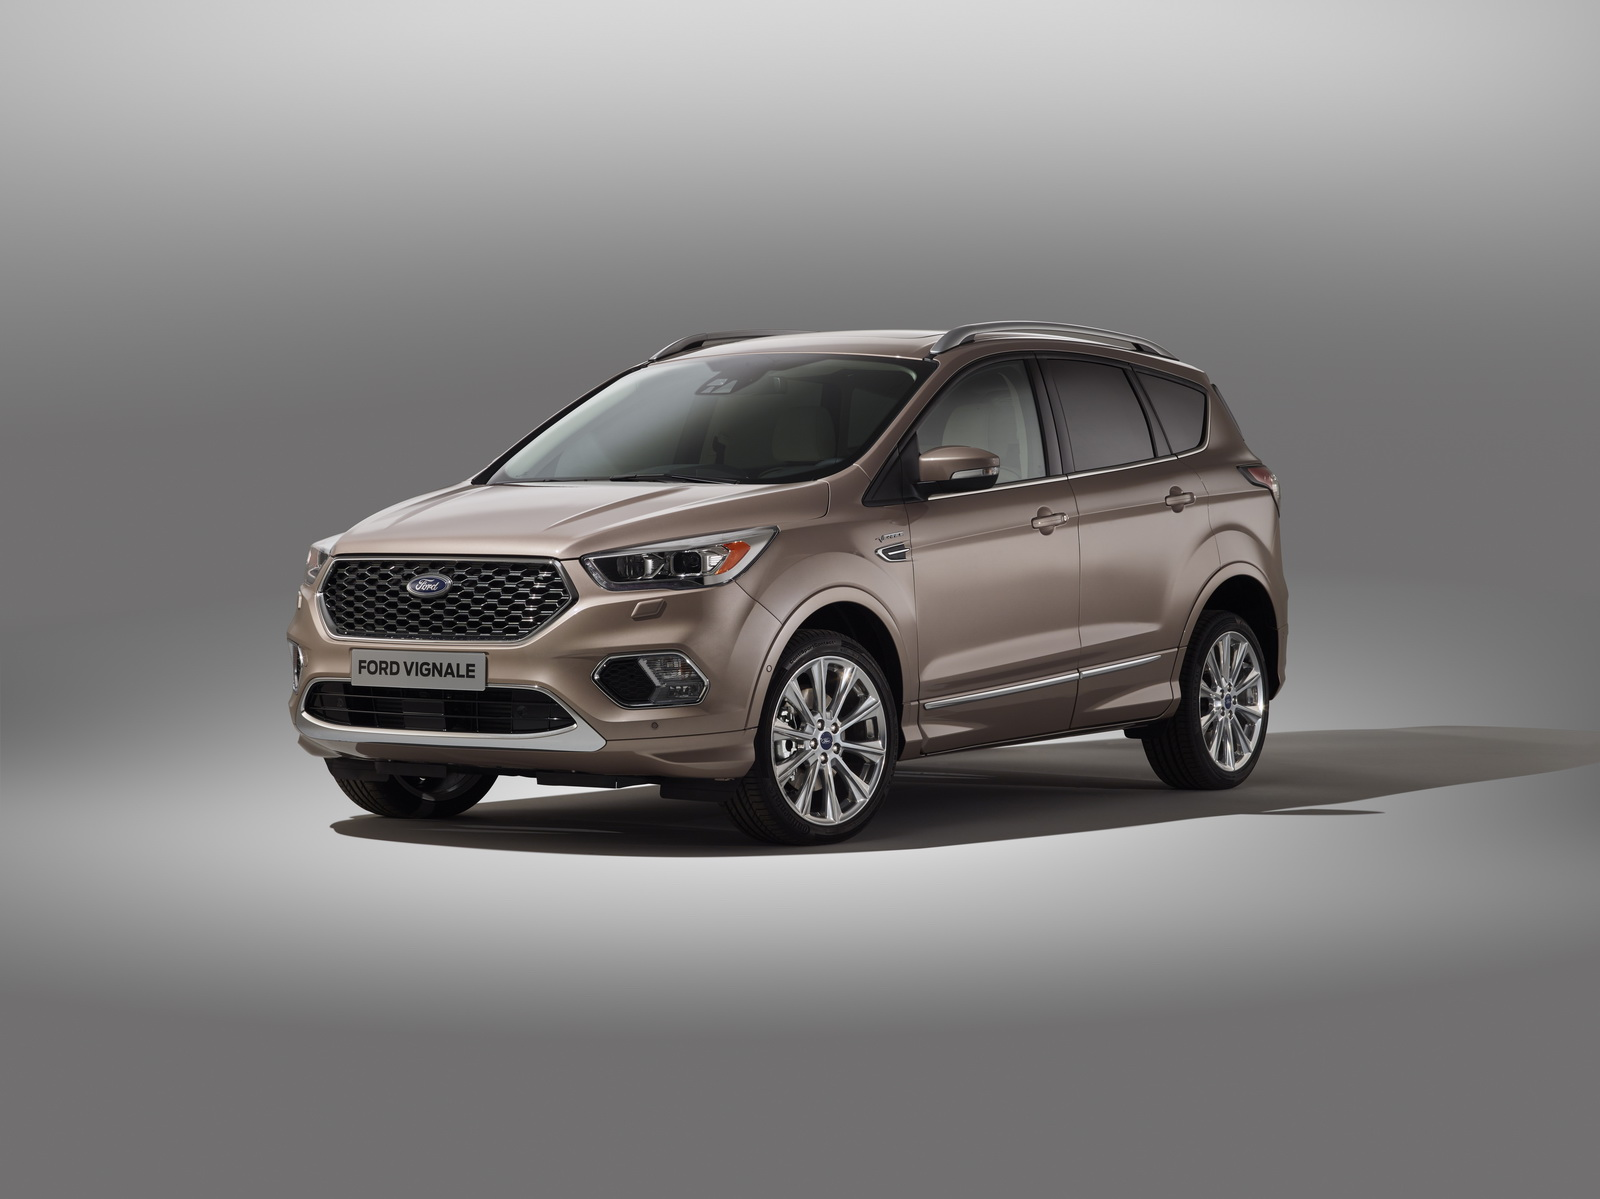 ford kuga restyl escape page 52 kuga ford forum marques. Black Bedroom Furniture Sets. Home Design Ideas